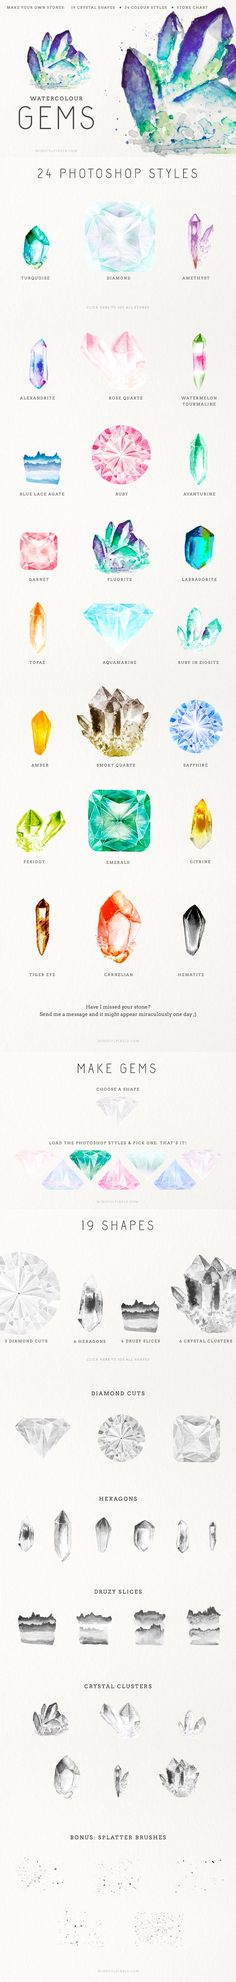 Gem Creator Kit Watercolor Crystal Clusters Clip Art Wedding Invitation Pocket Scrapbooking / Project Life / Journaling / Memory Keeping Watercolour Painting, Painting & Drawing, Watercolor Ideas, Gem Drawing, Watercolor Moon, Watercolor Wedding, Watercolours, Art Tutorials, Pencil Art